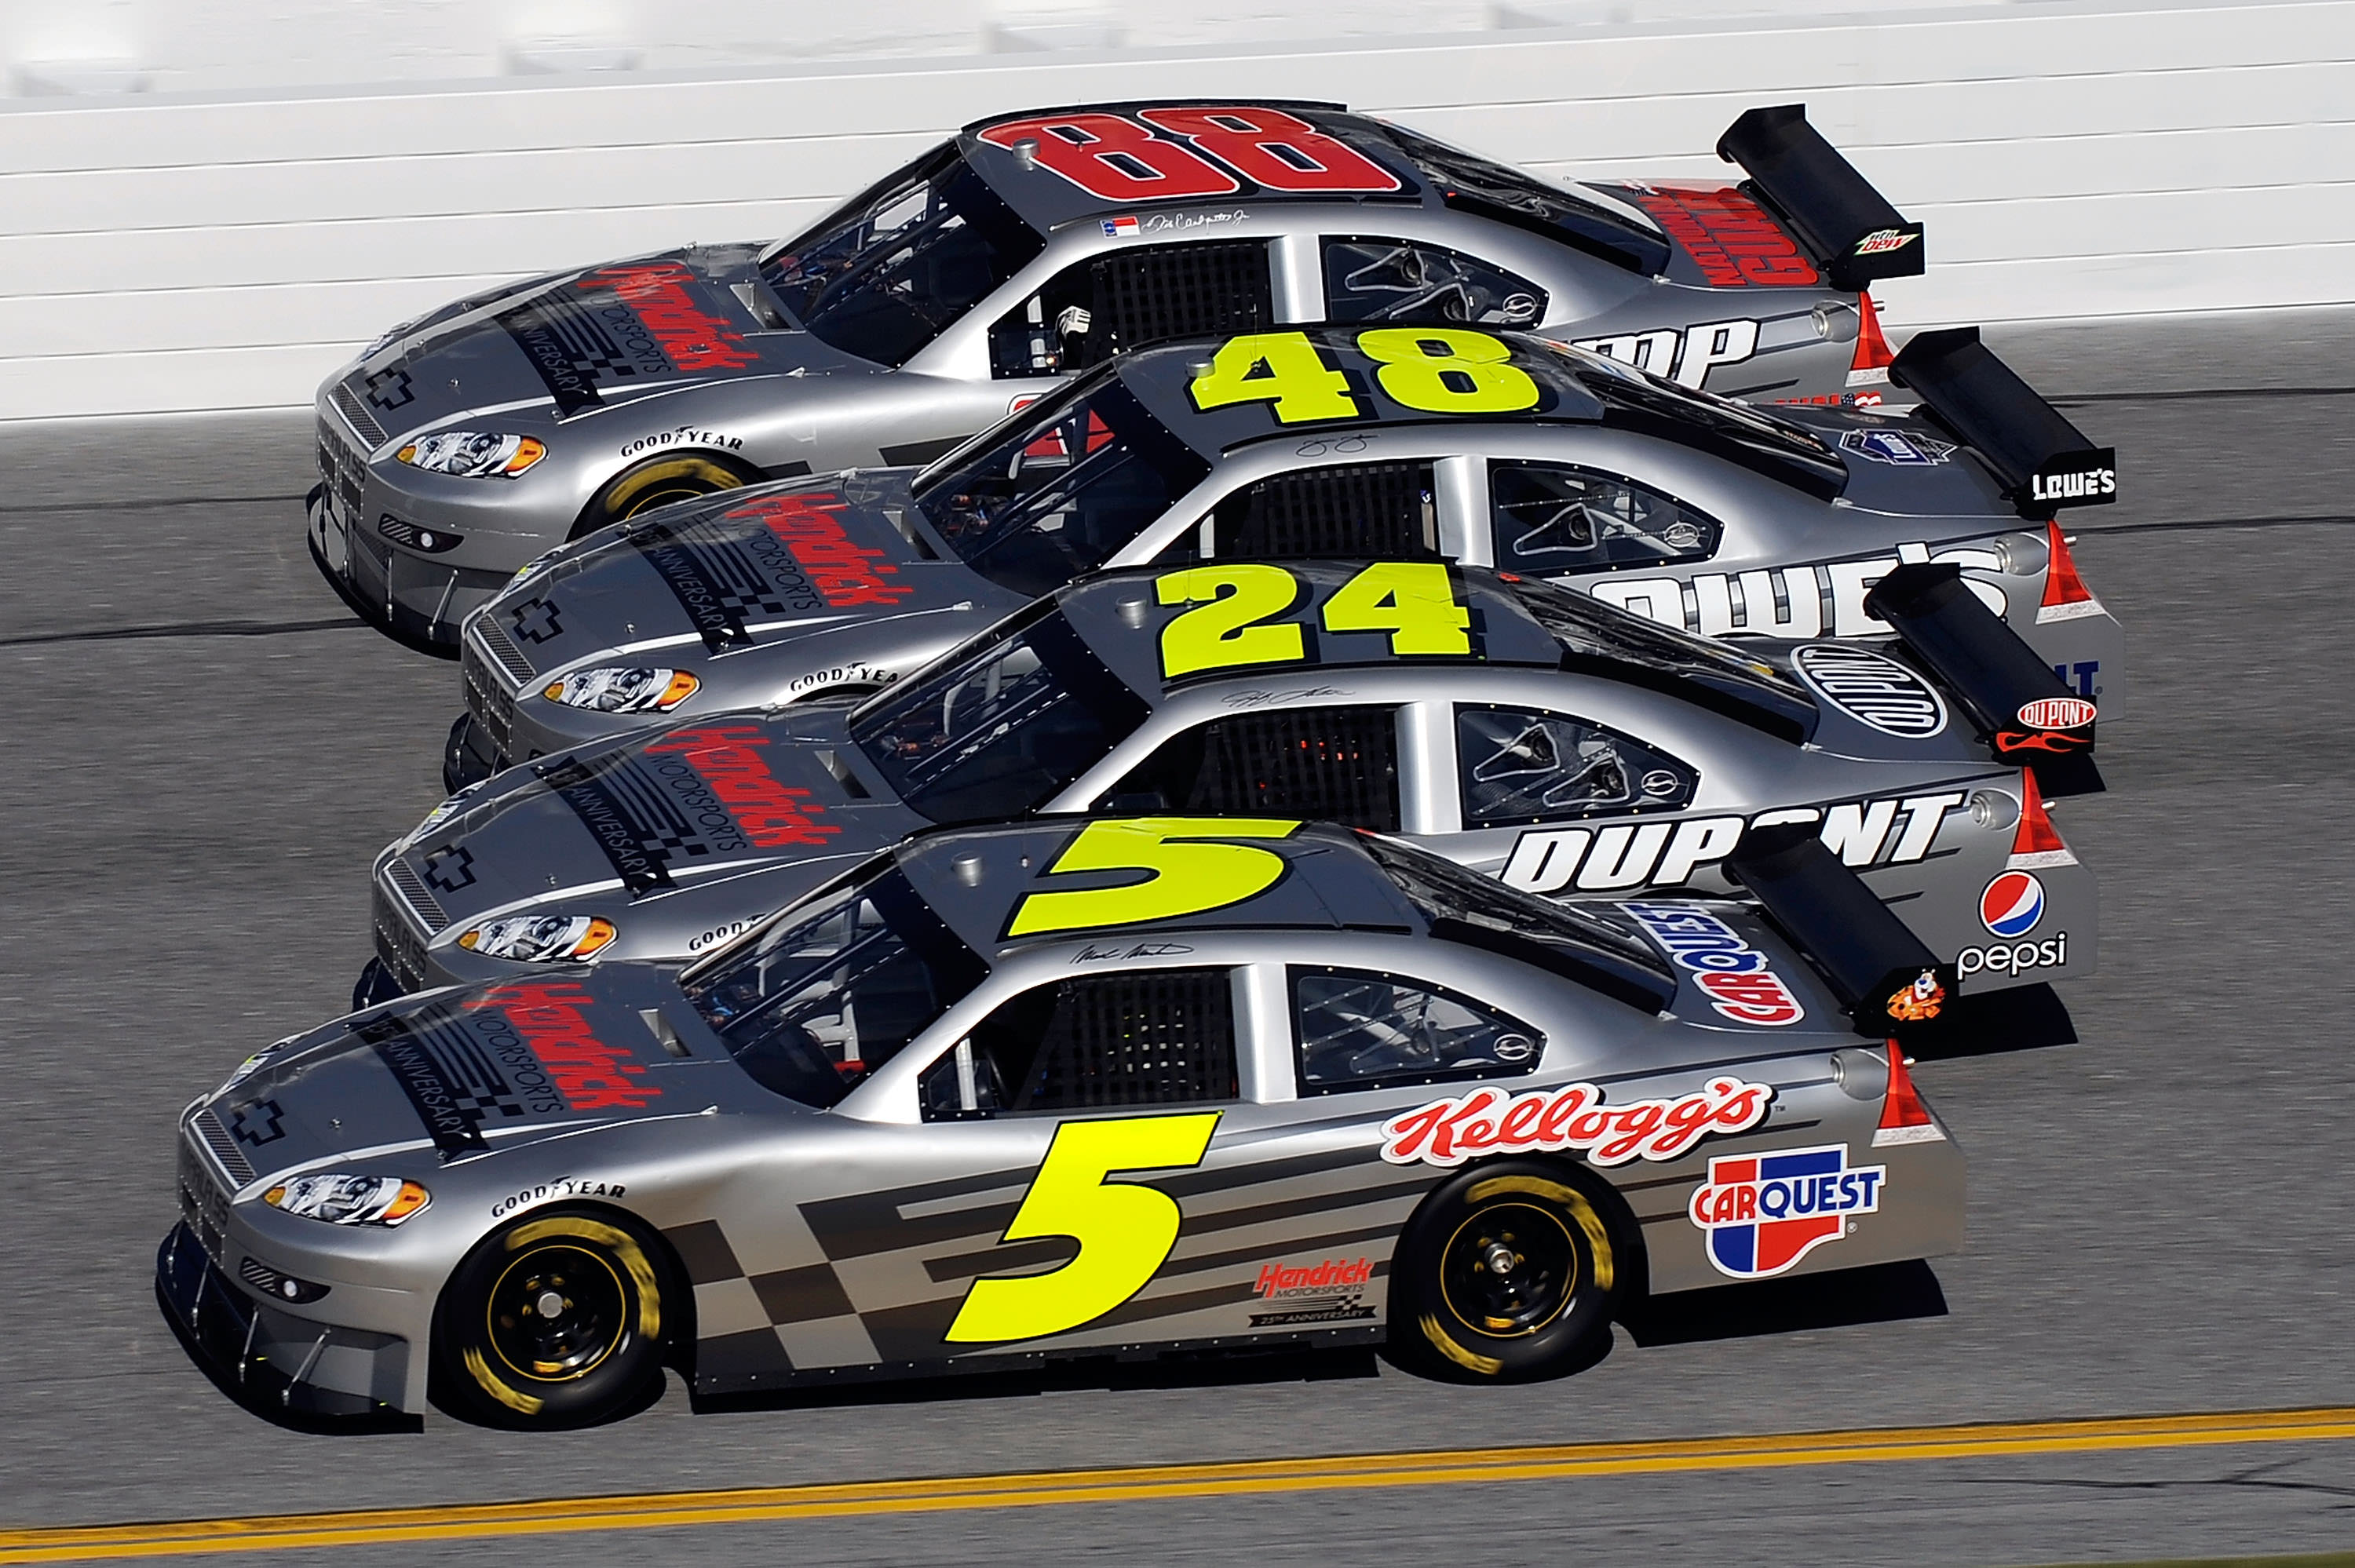 Is There More to the Hendrick and Stewart-Haas Victories Than Meets the Eye?